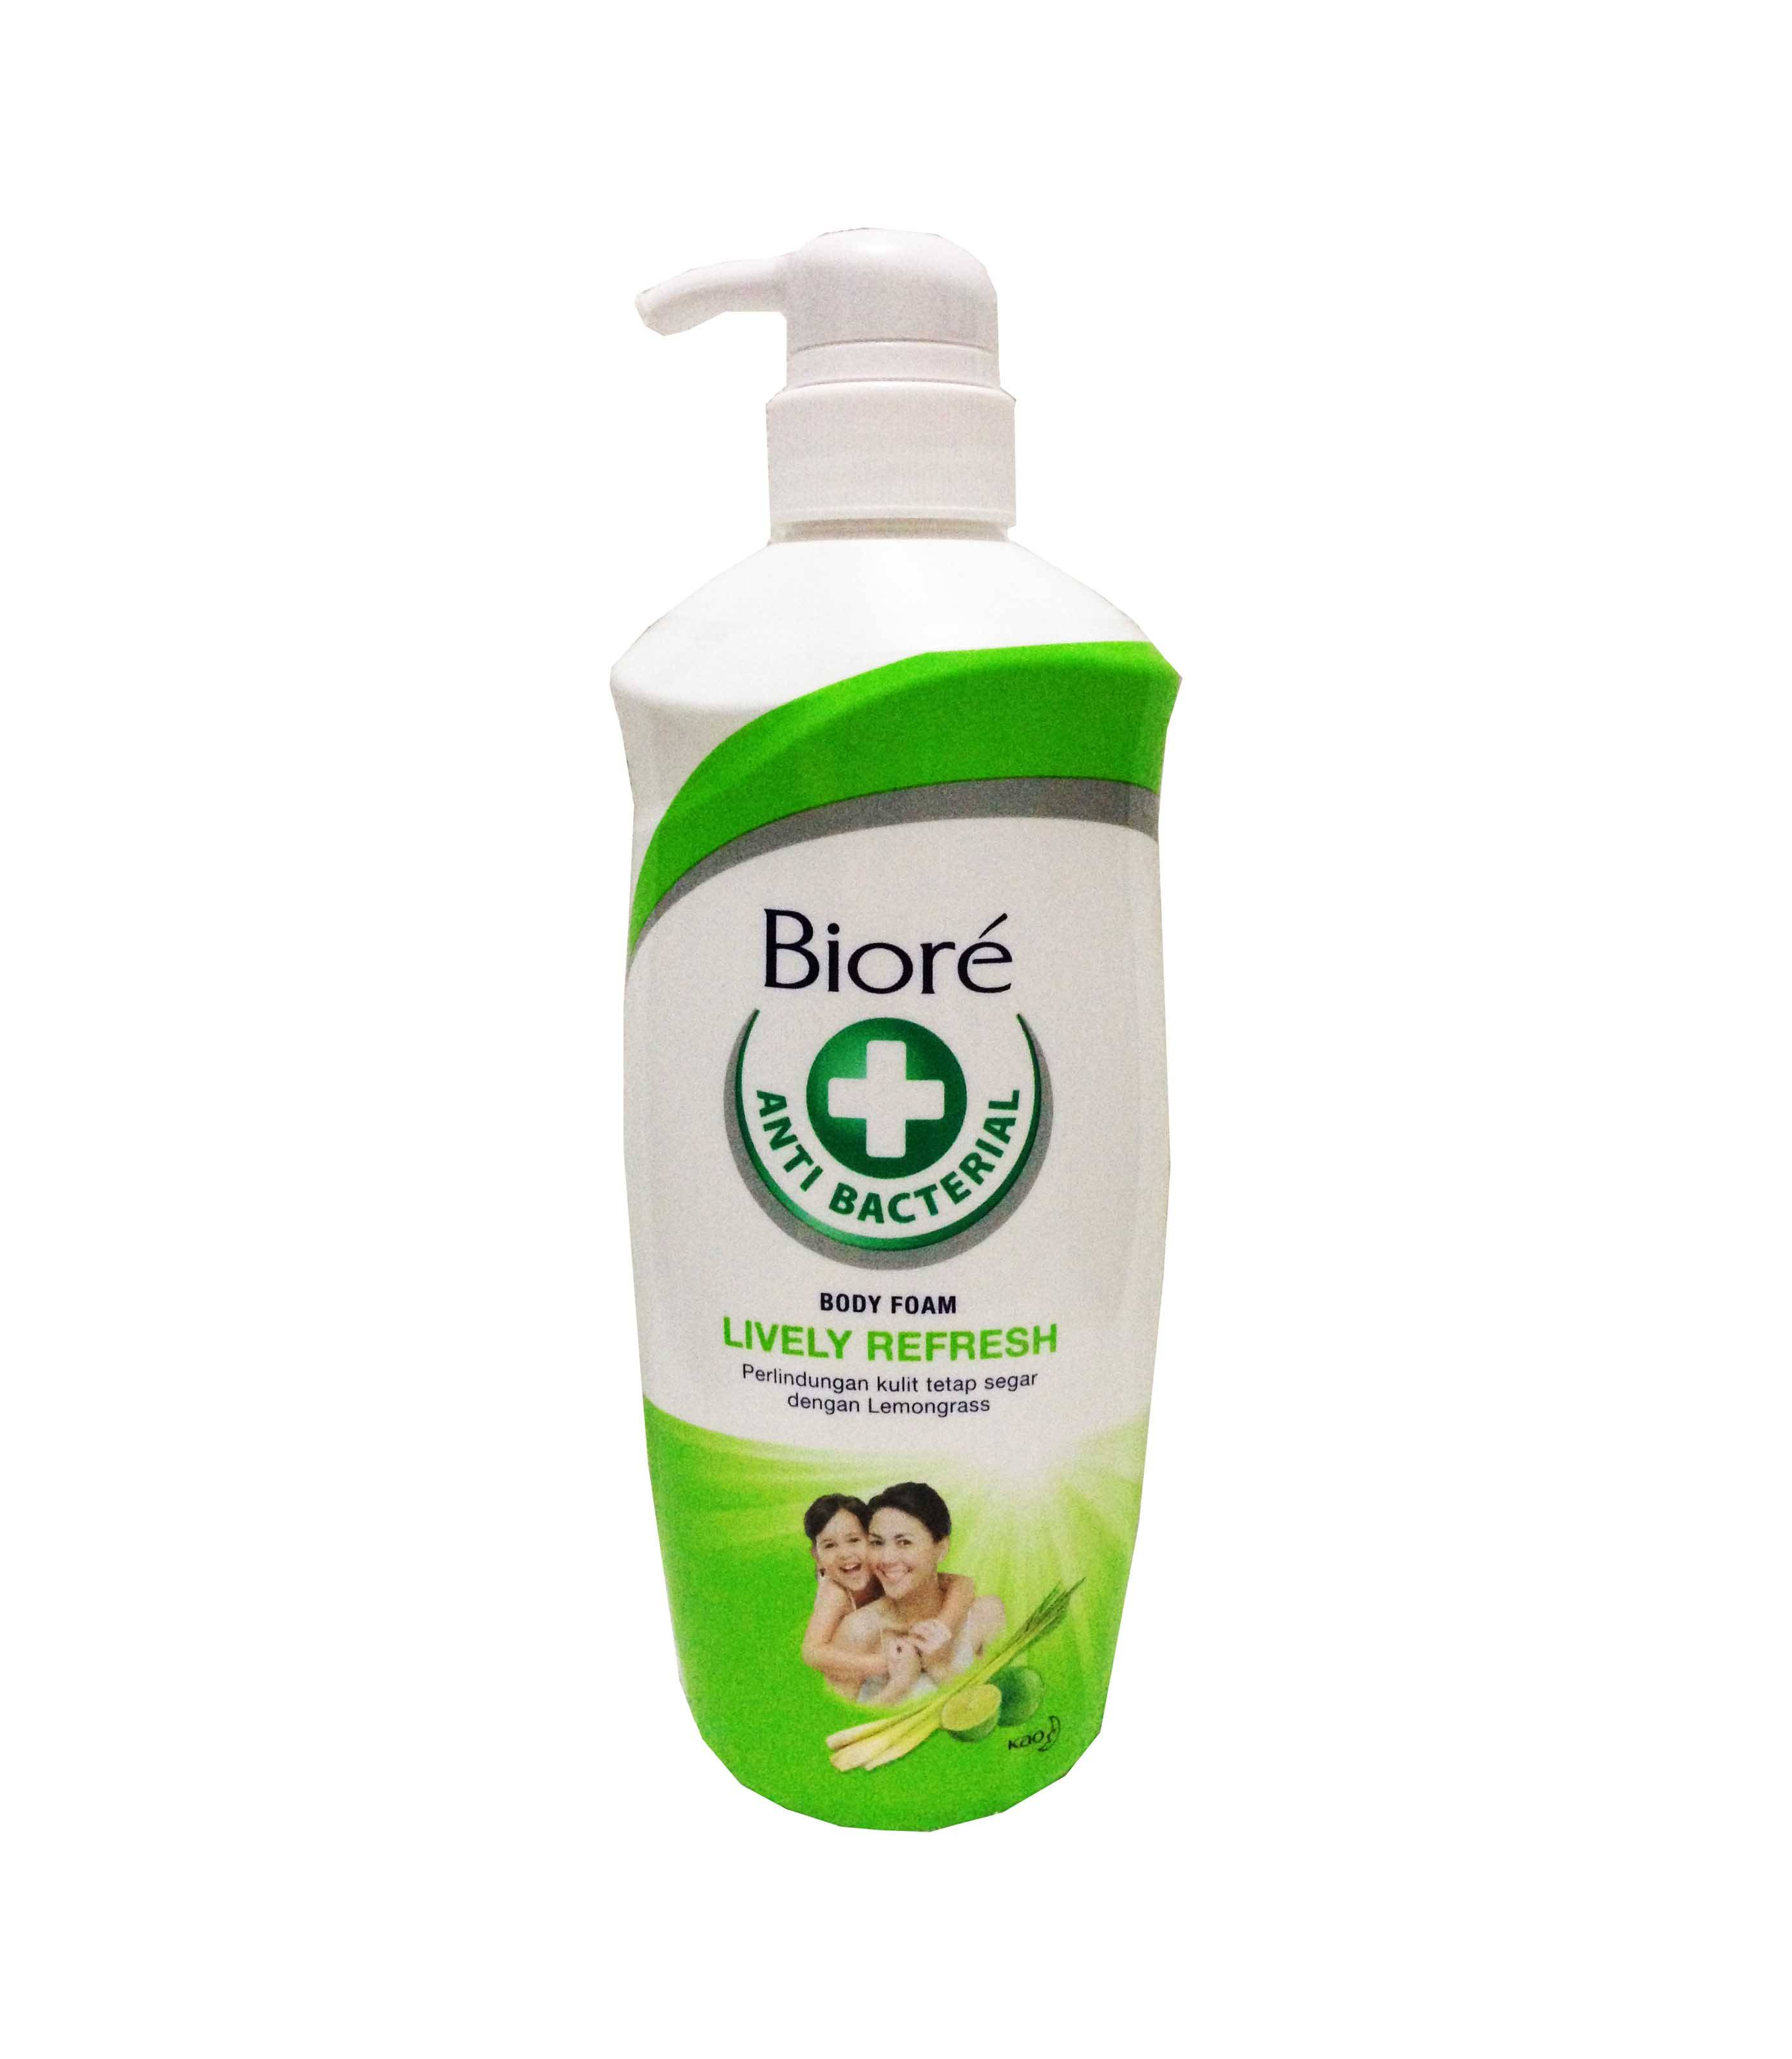 Biore Body Foam 600ml